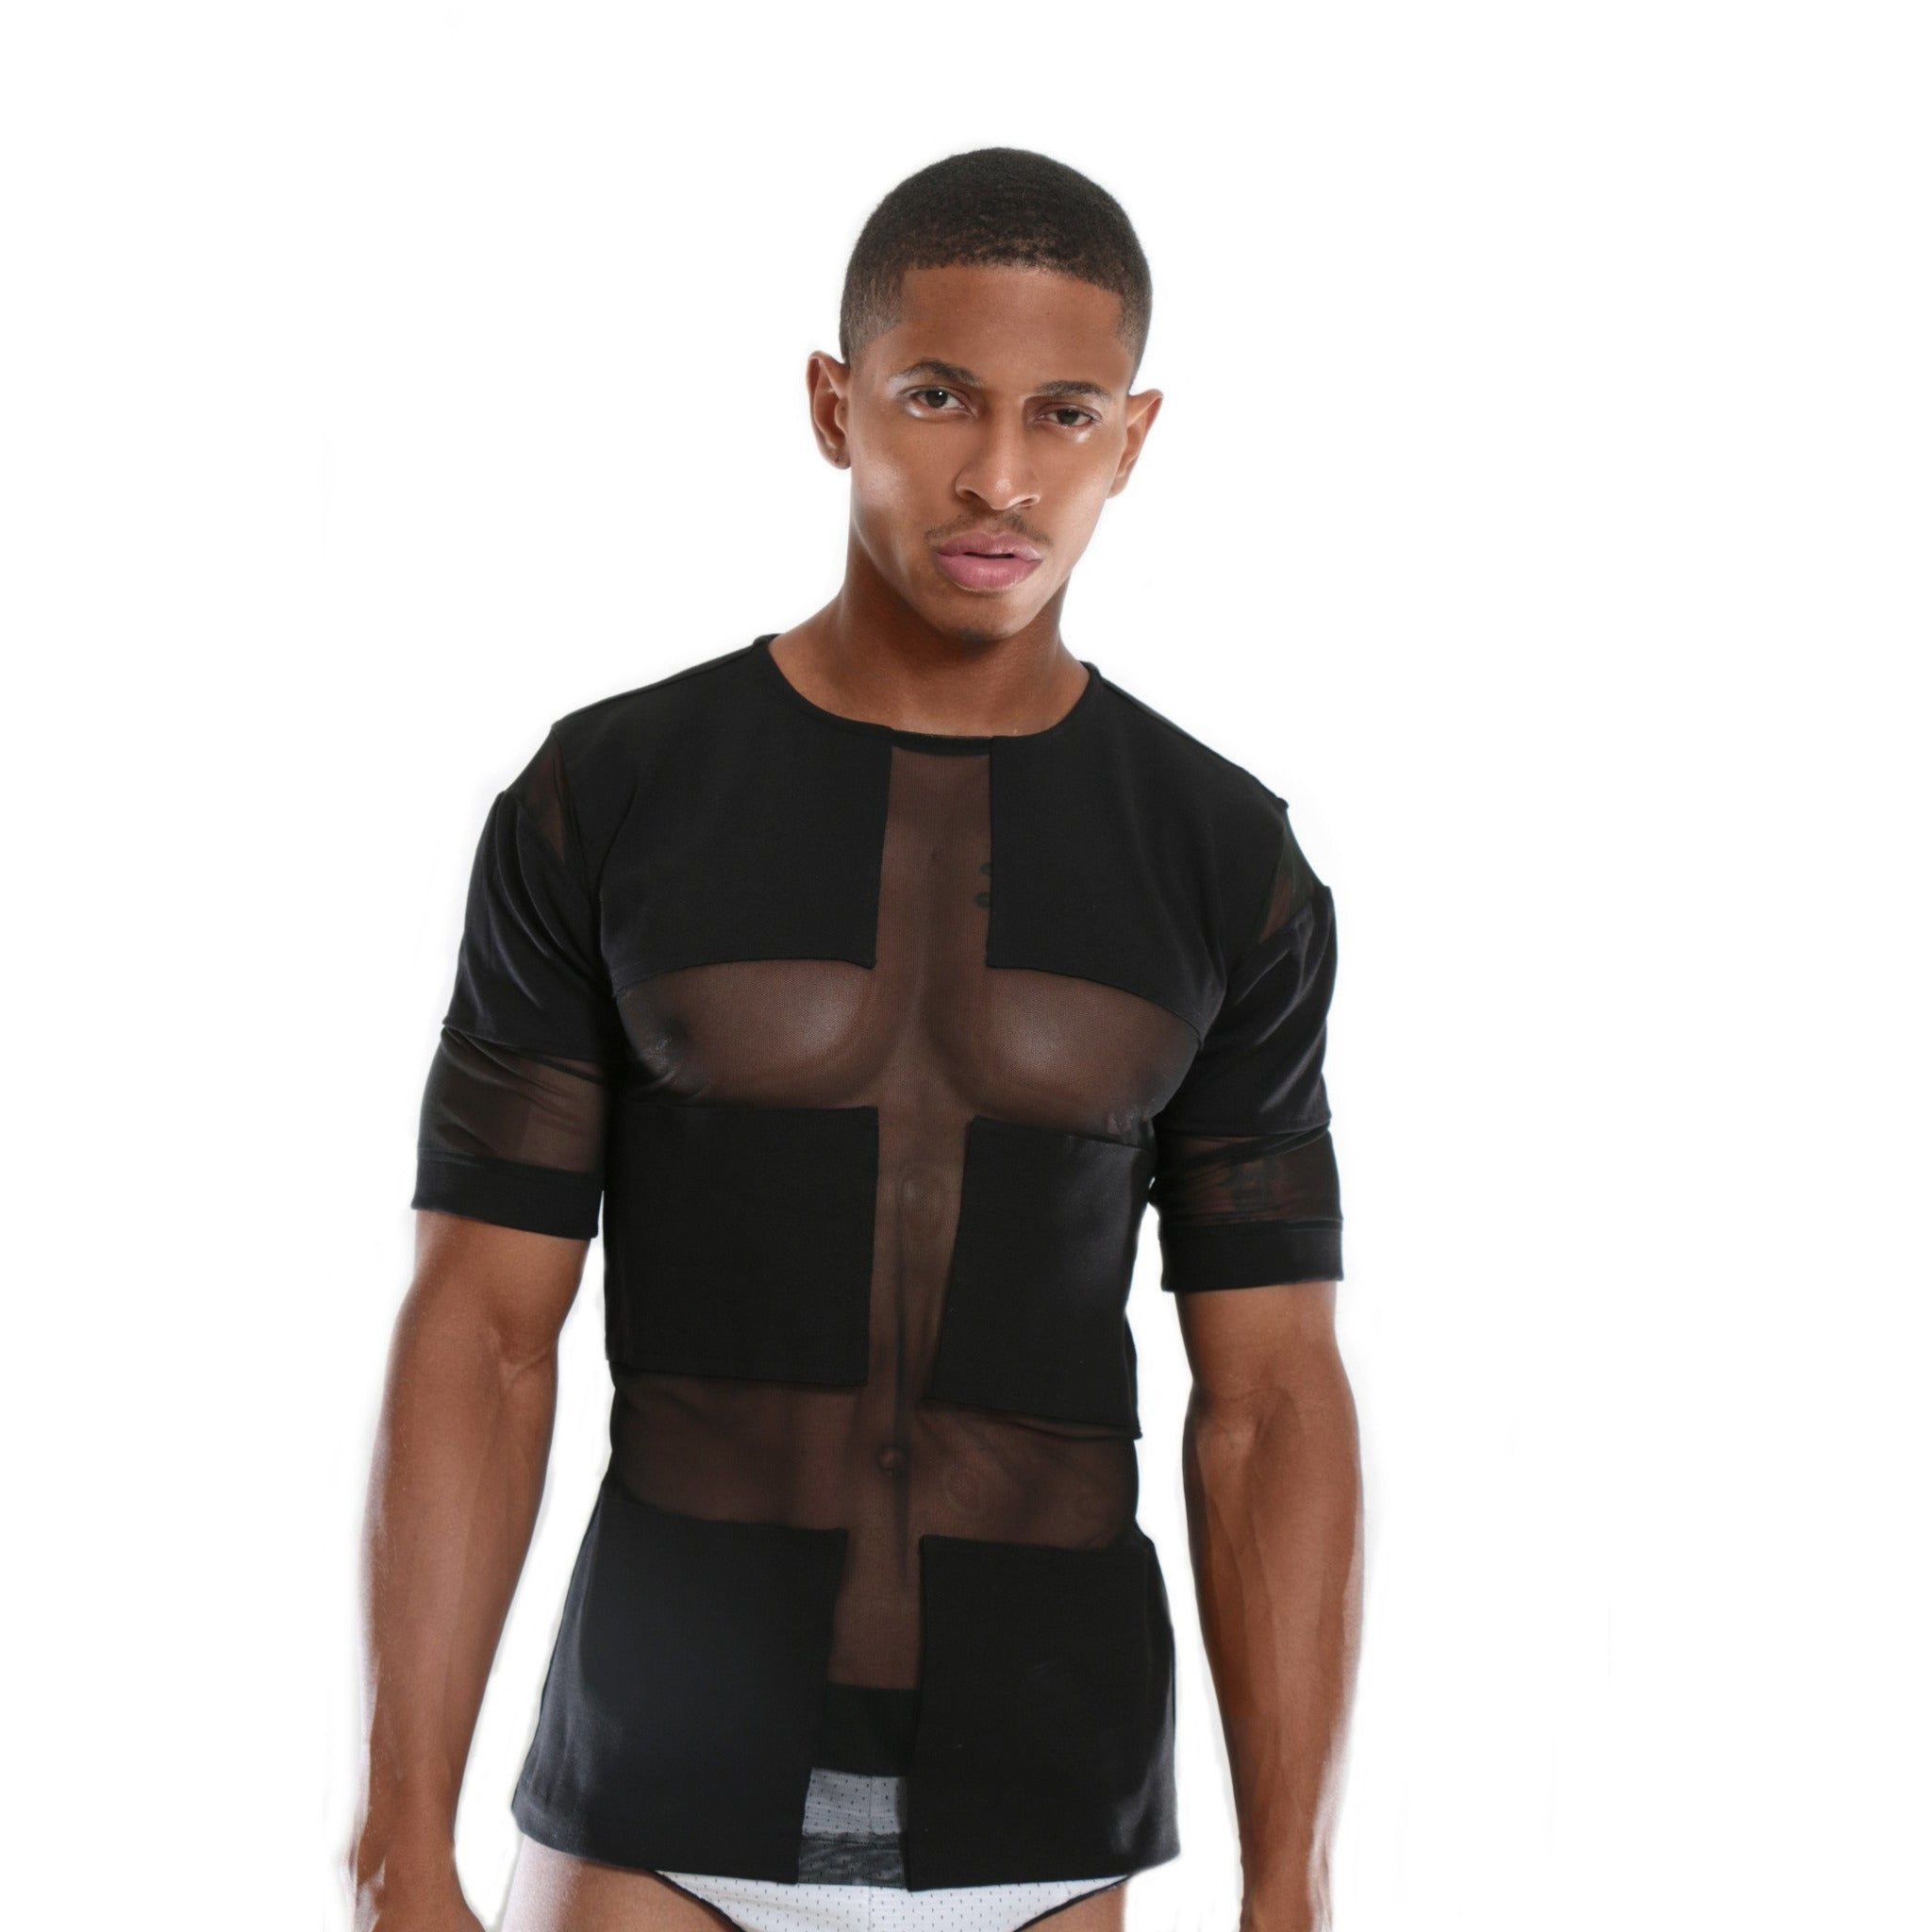 High quality Luxury T-shirt with see through mesh